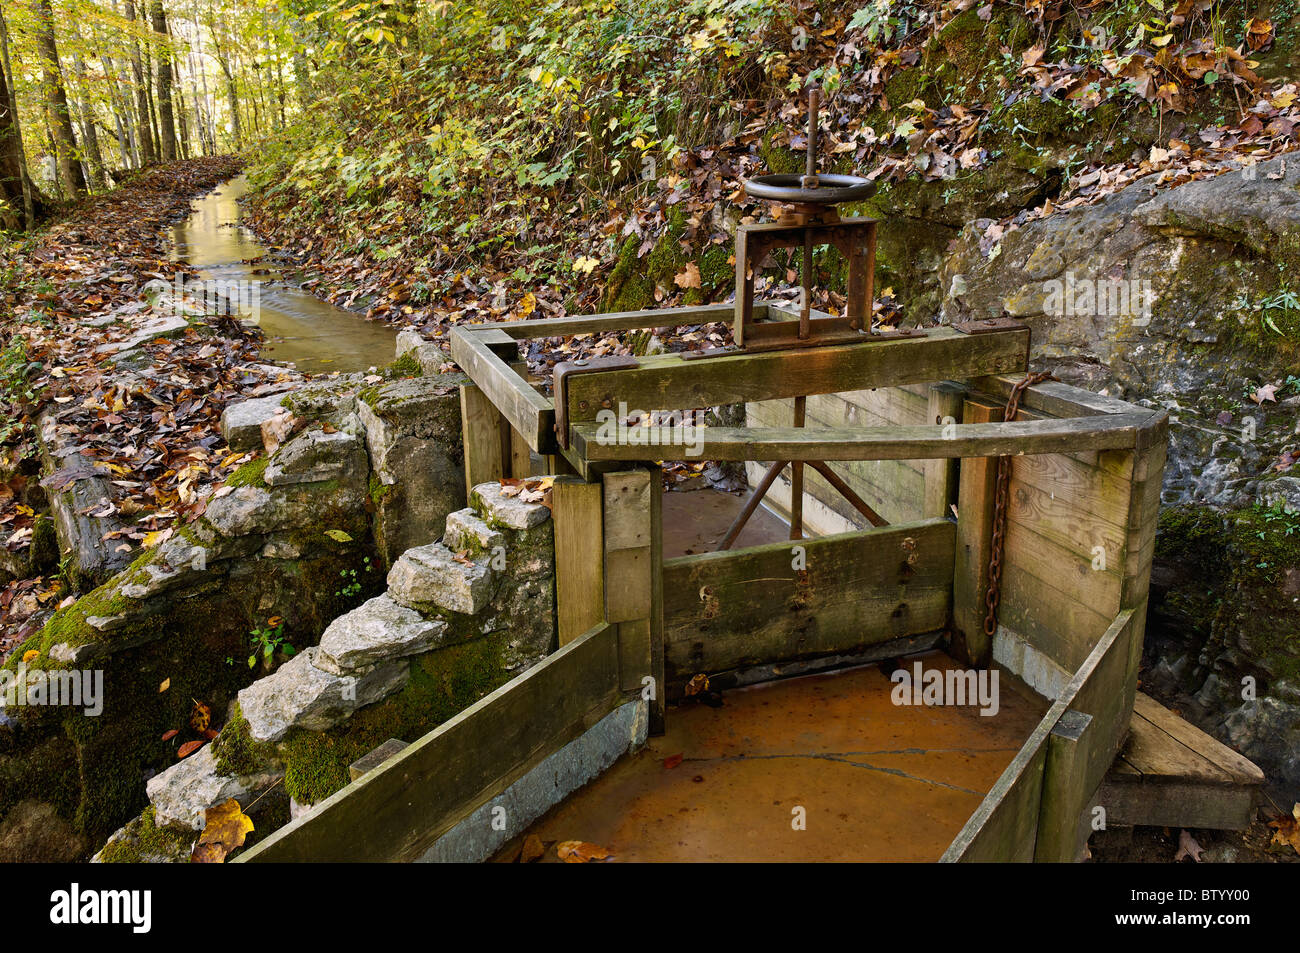 Mill Race at the Rice Grist Mill at Norris Dam State Park in Anderson County, Tennessee - Stock Image